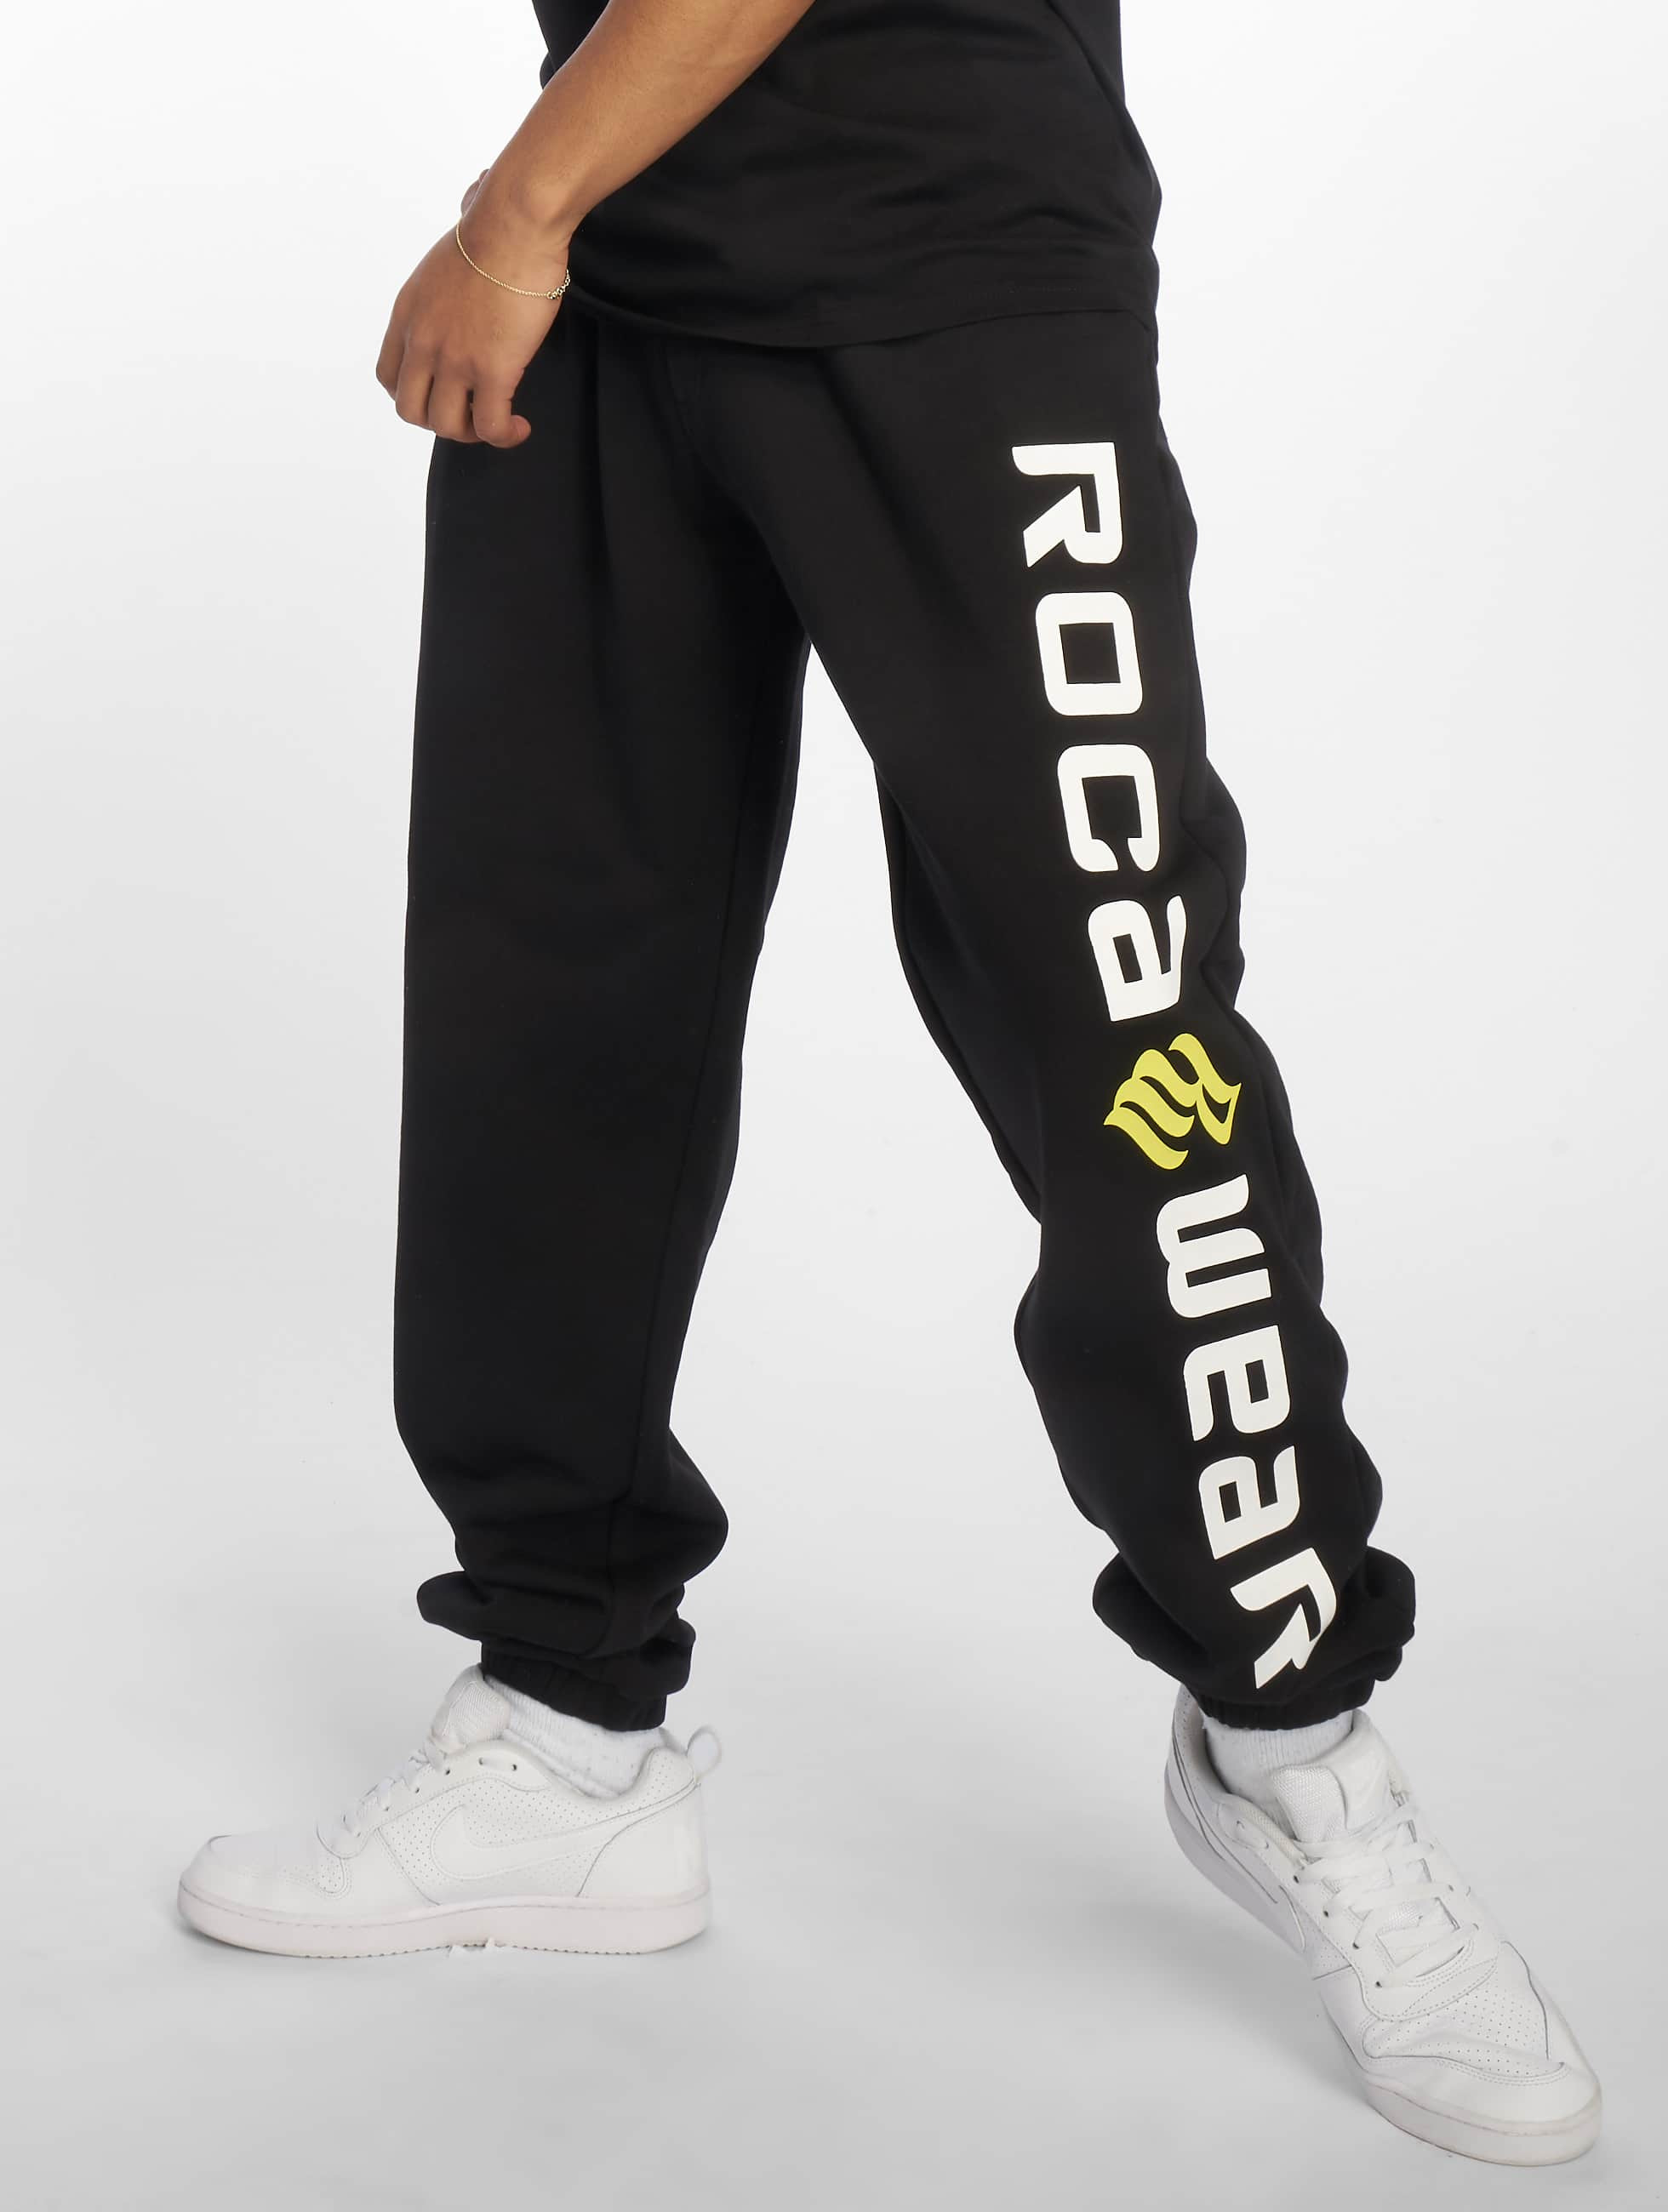 Rocawear / Sweat Pant Basic Fleece in black M